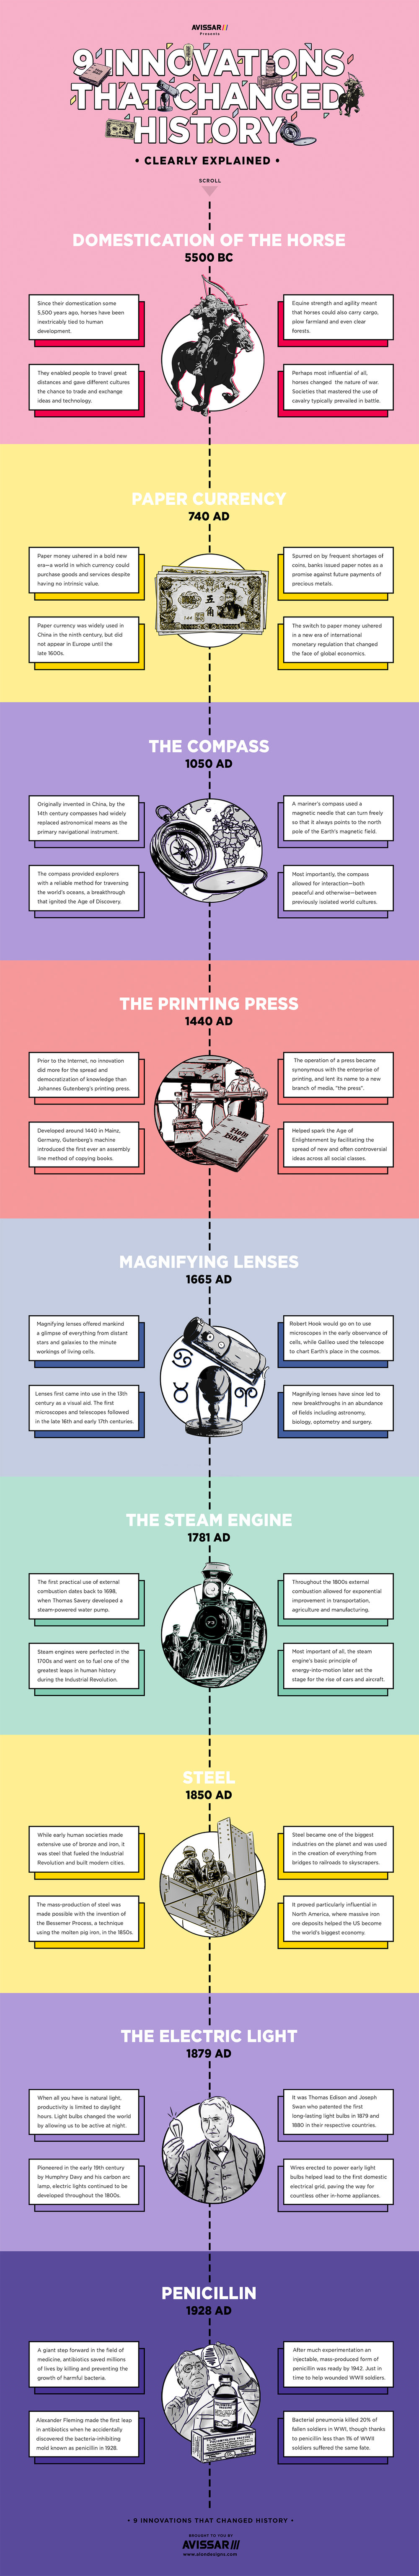 9_Innovations_That_Changed_History_by_Alon_Avissar-2.jpg